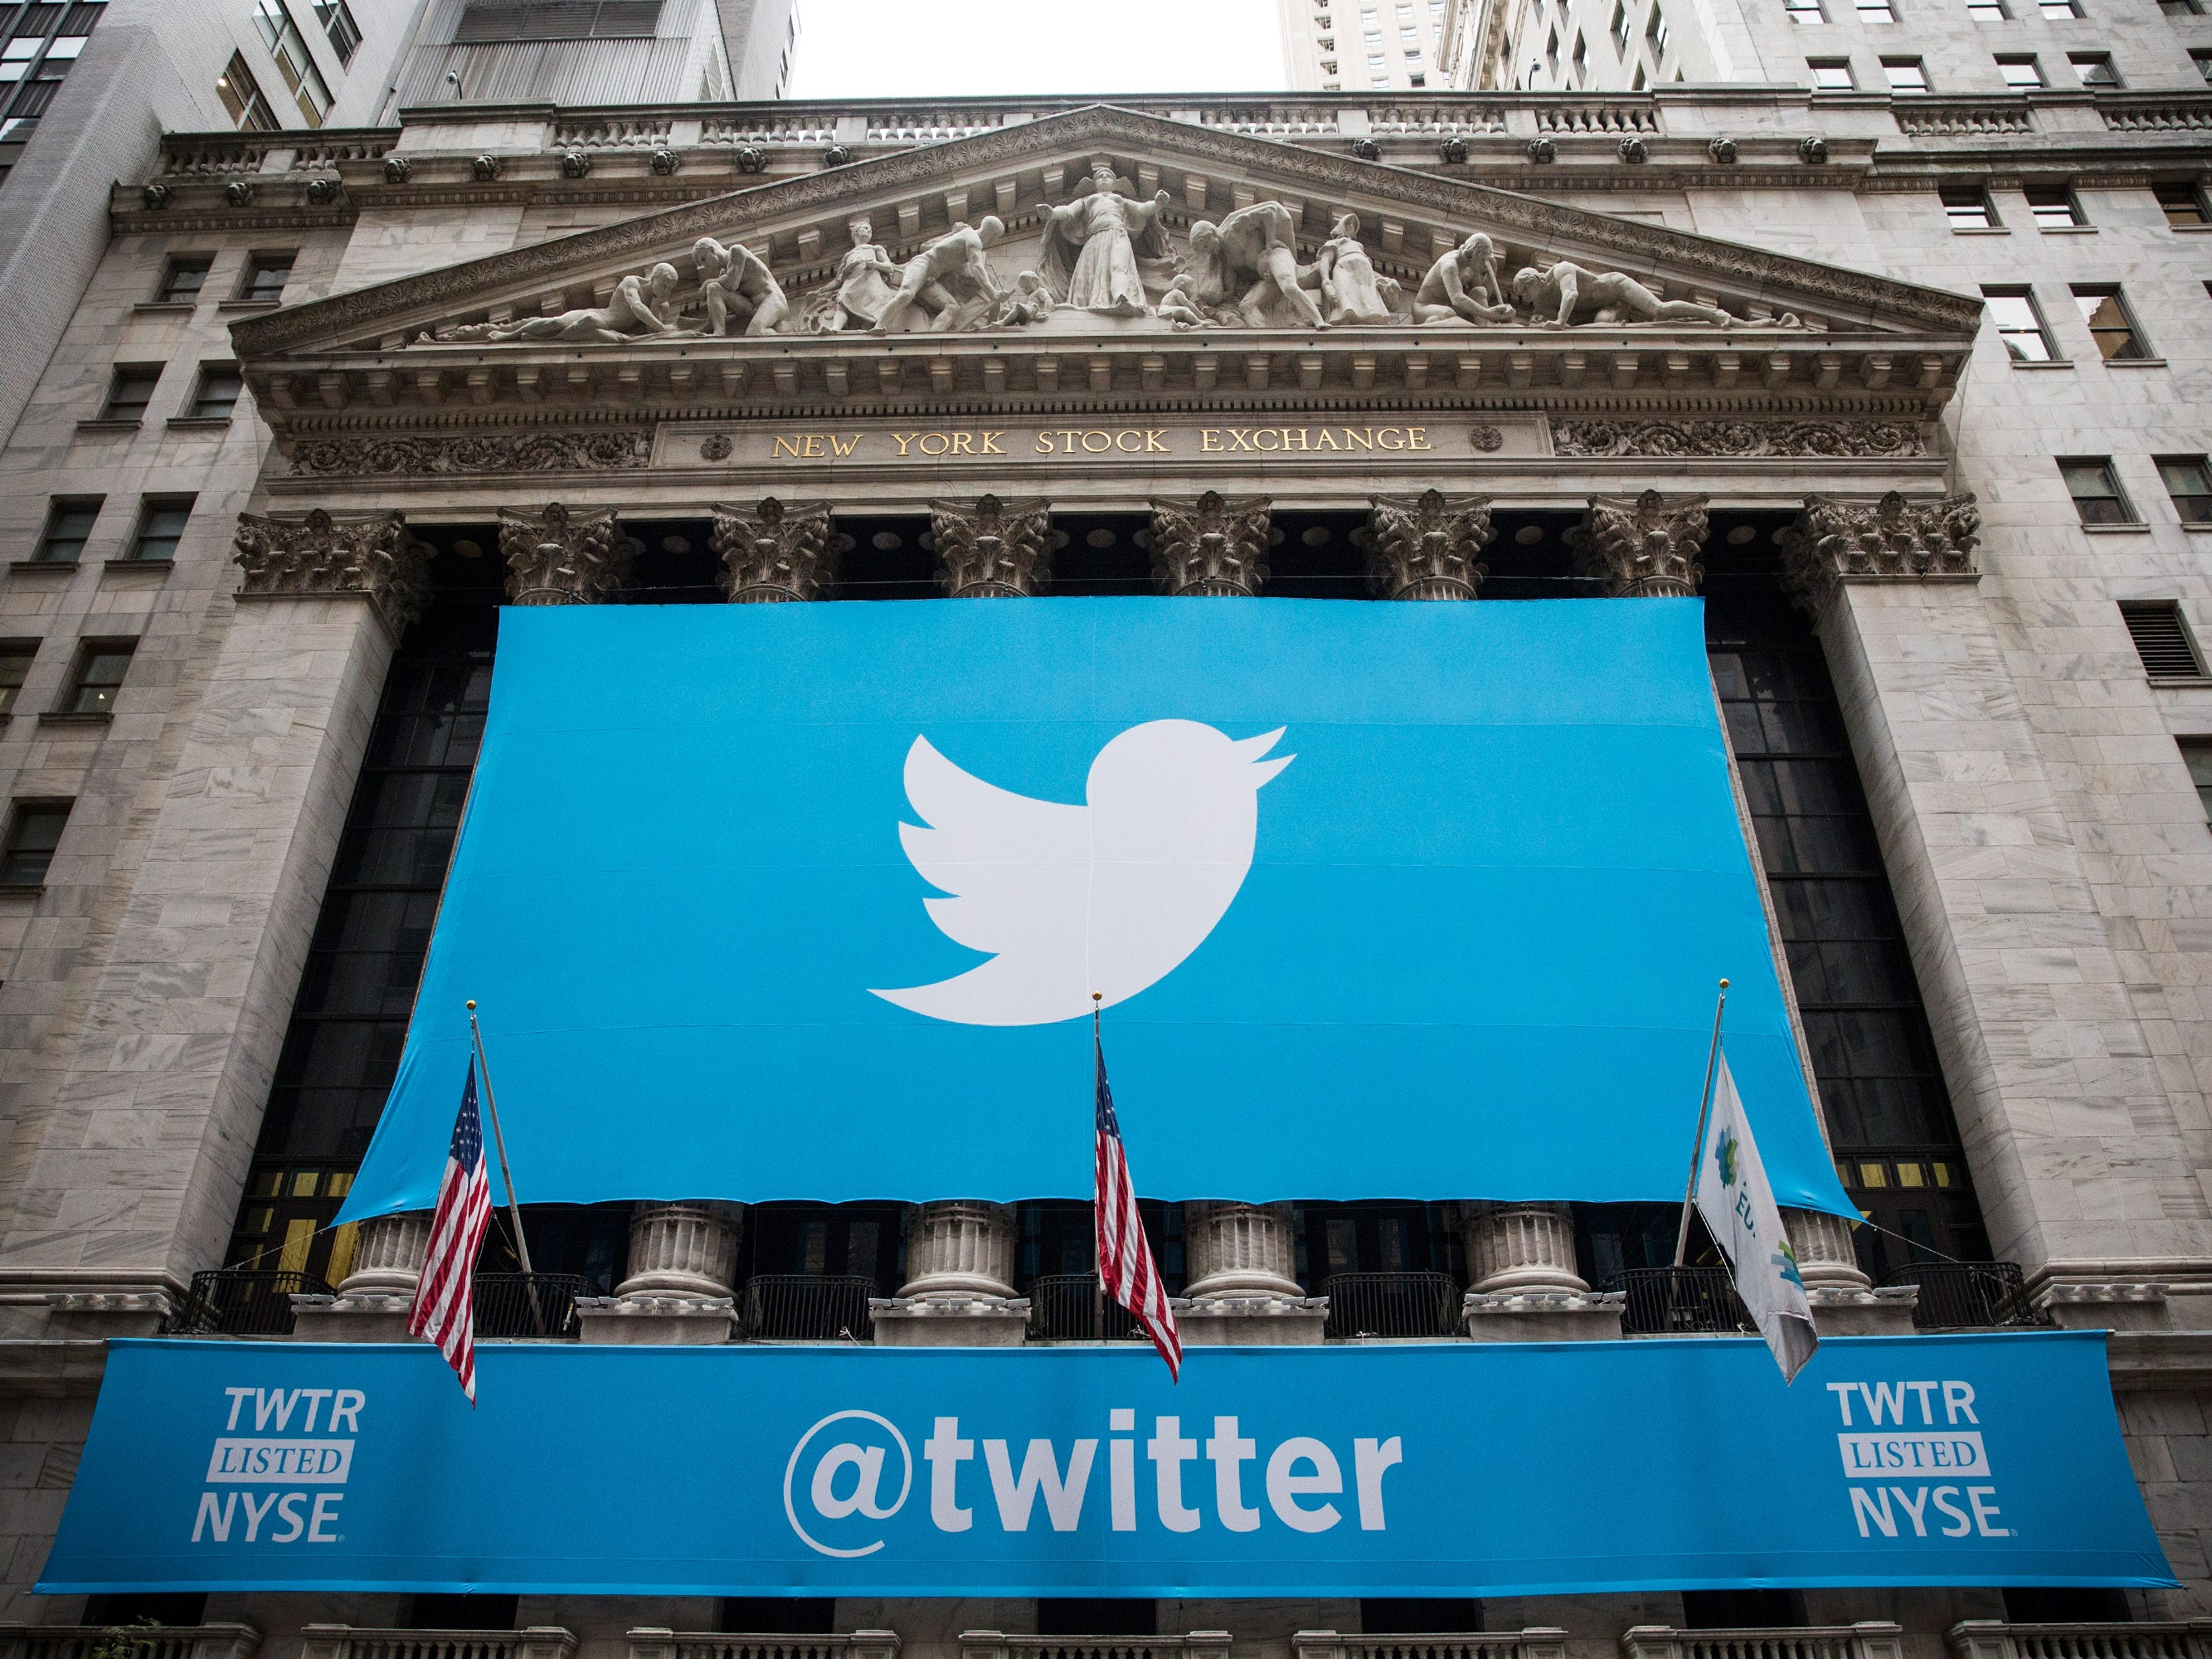 The Twitter logo is displayed on a banner outside the New York Stock Exchange on Nov. 7, 2013.